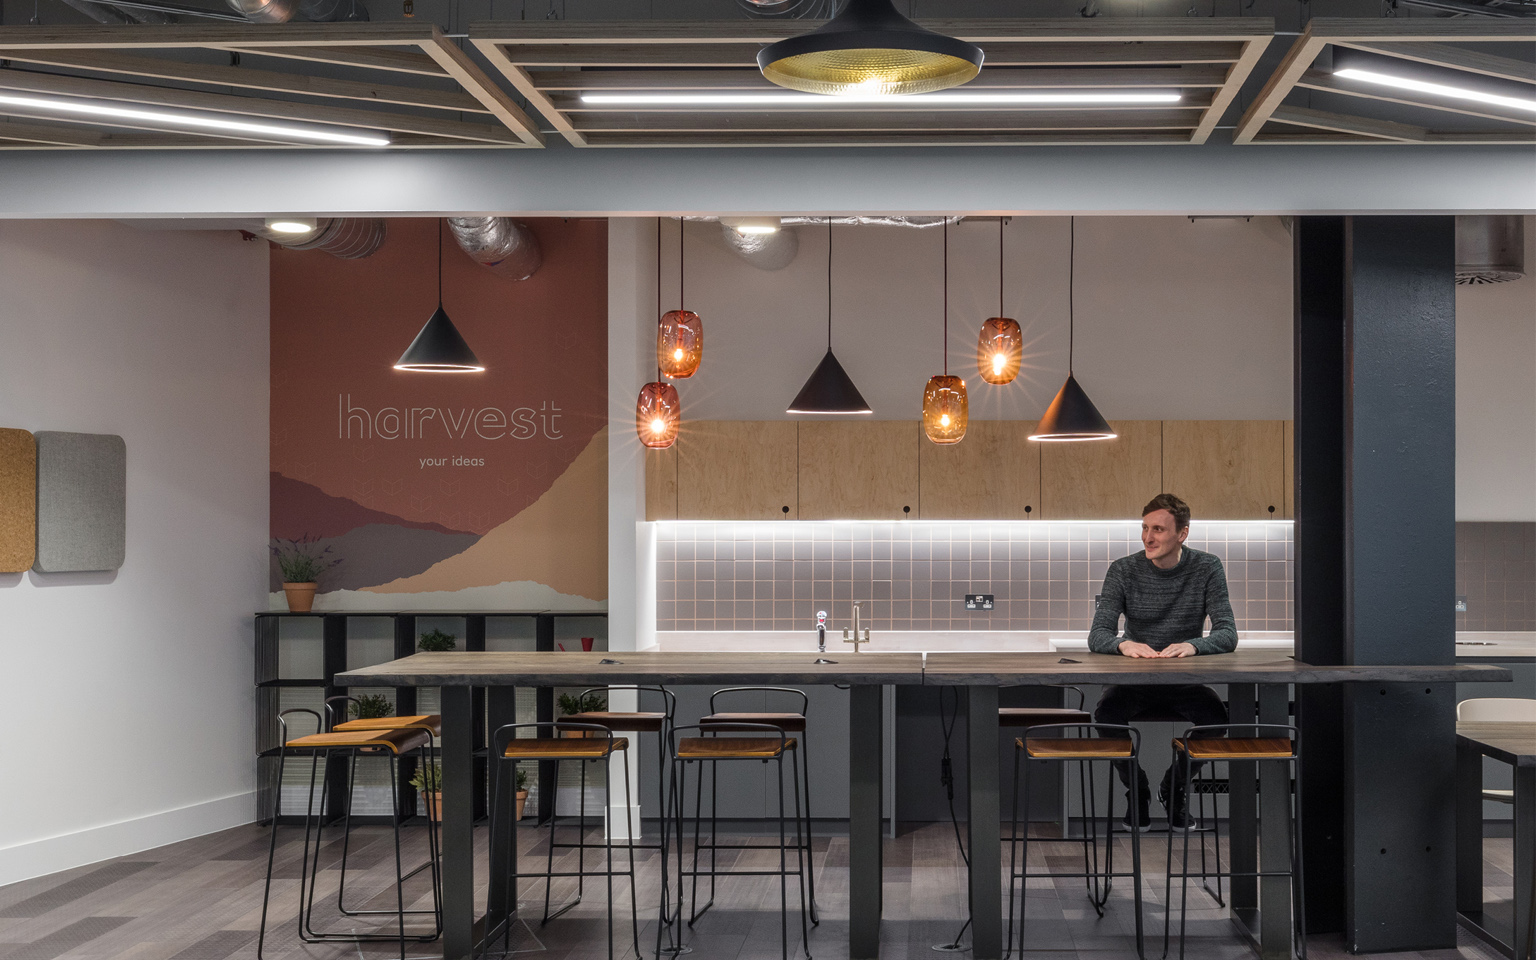 Natwest Co Working Space Harvest